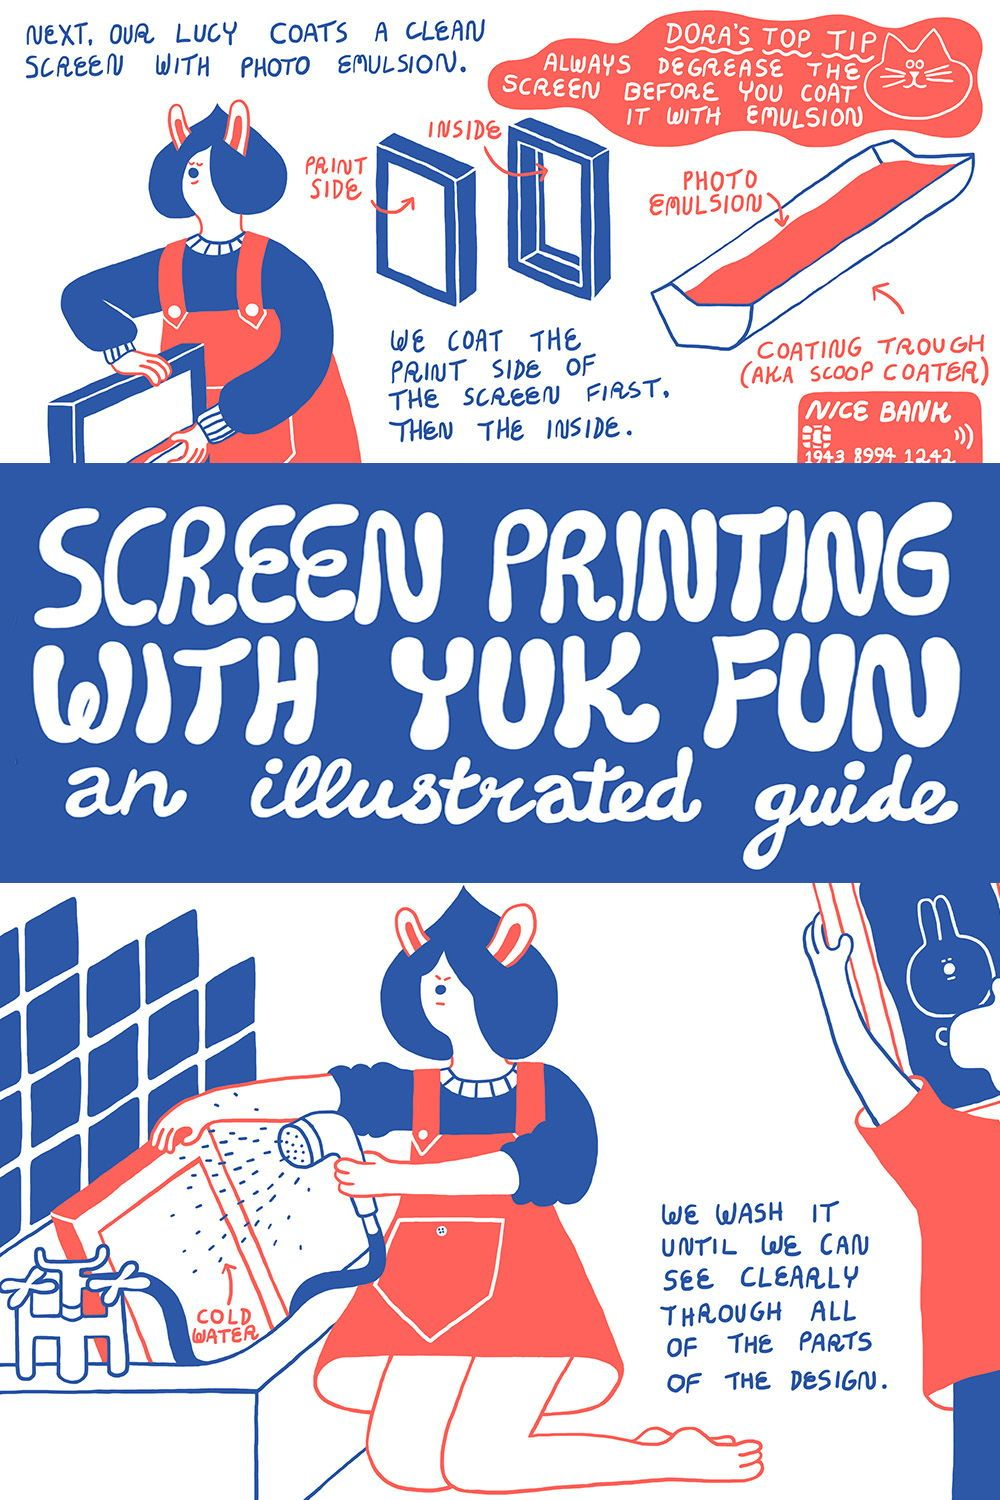 How to screen print at home: an illustrated guide by YUK FUN